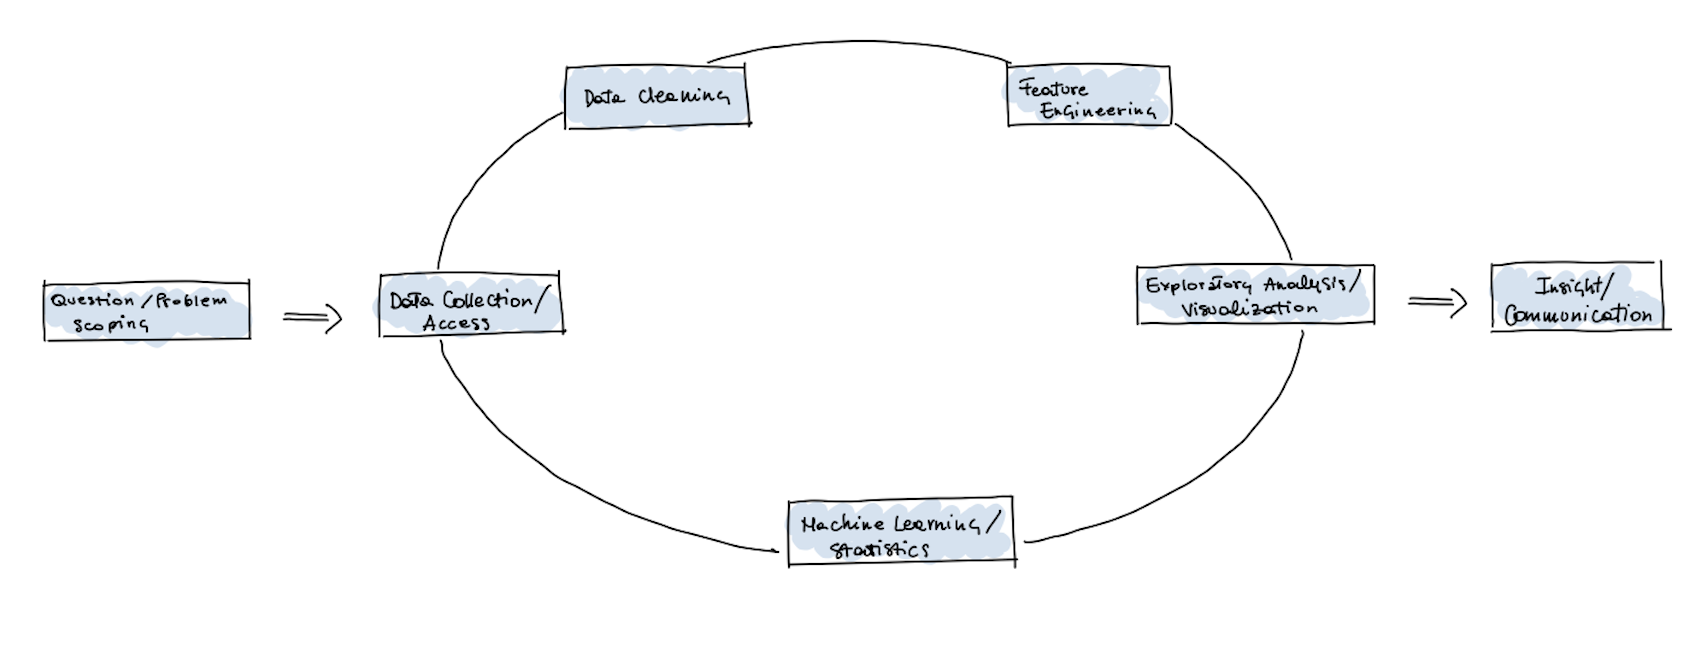 A hand-drawn diagram representing a non-linear, iteratively structured data science workflow.